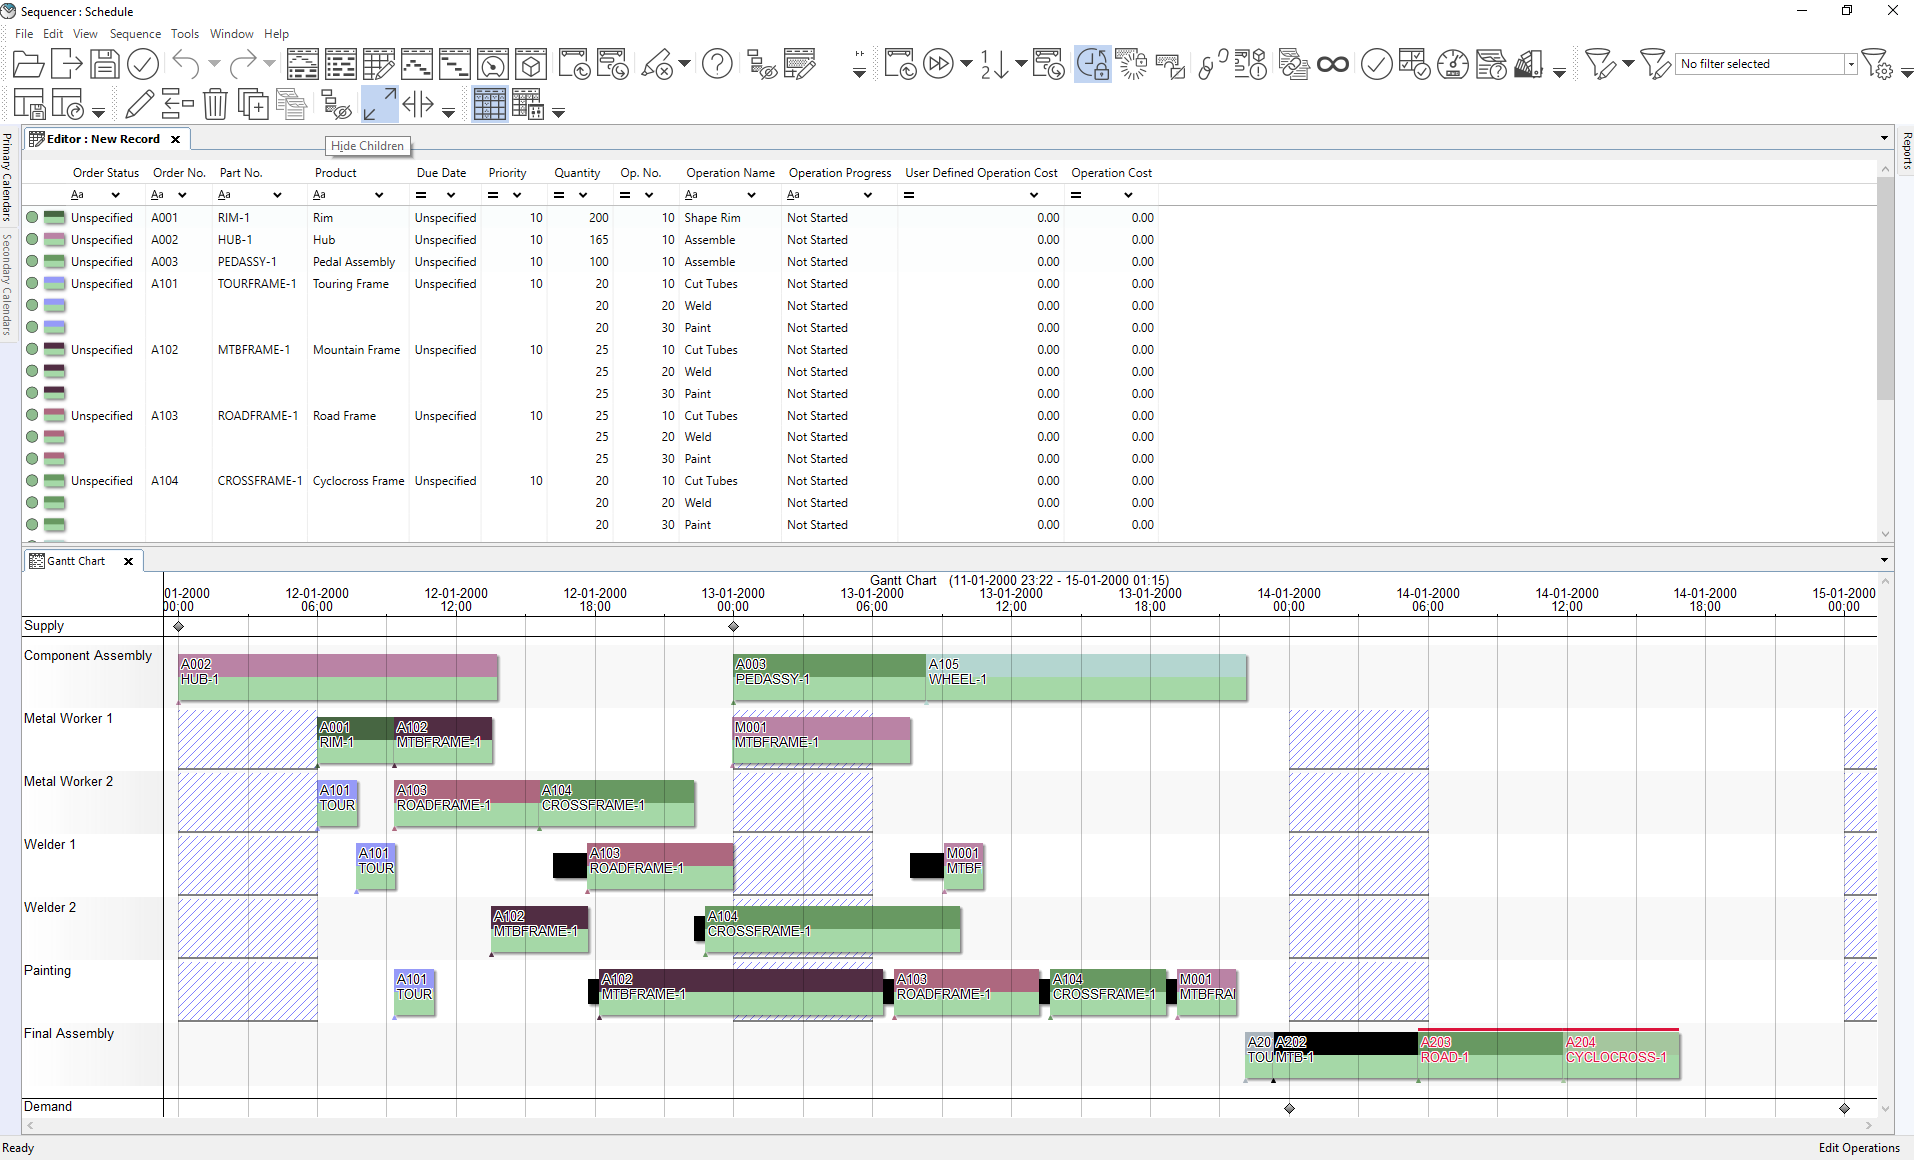 The display shows the Gantt chart and Editor window both open in separate horizontal windows